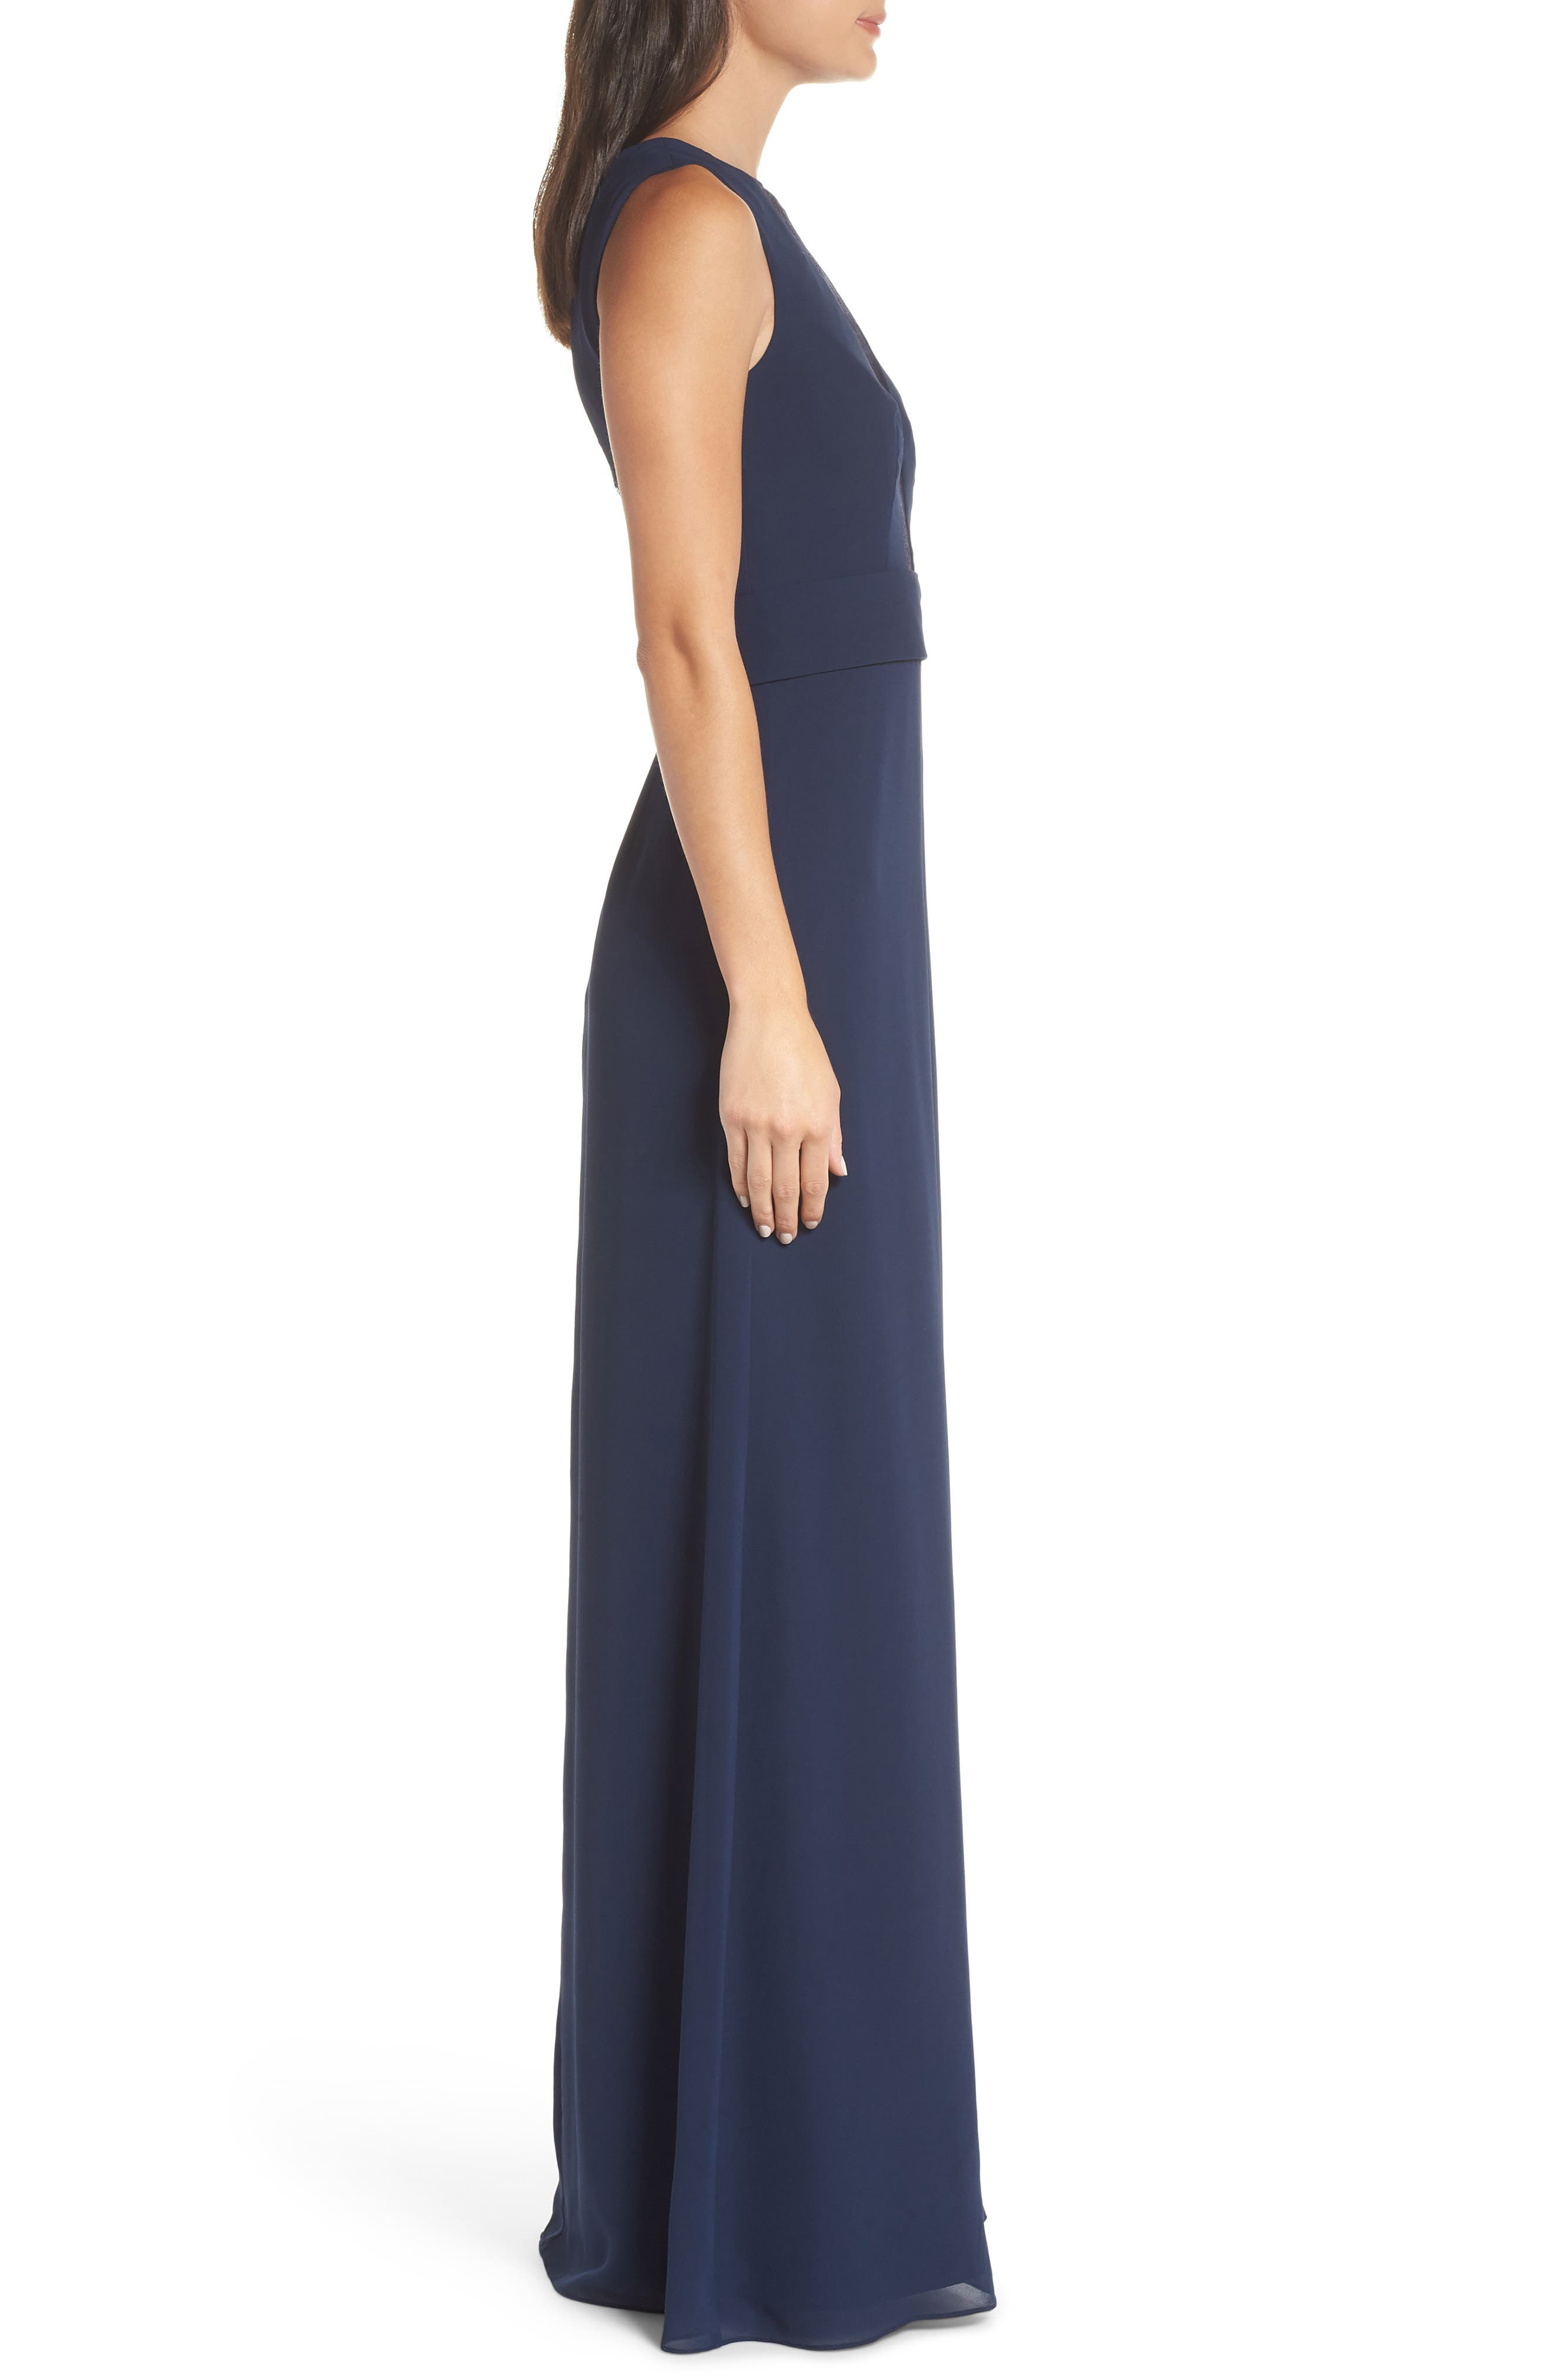 HAYLEY PAIGE OCCASIONS,                             Lace Inset Chiffon Gown,                             Alternate thumbnail 4, color,                             NAVY